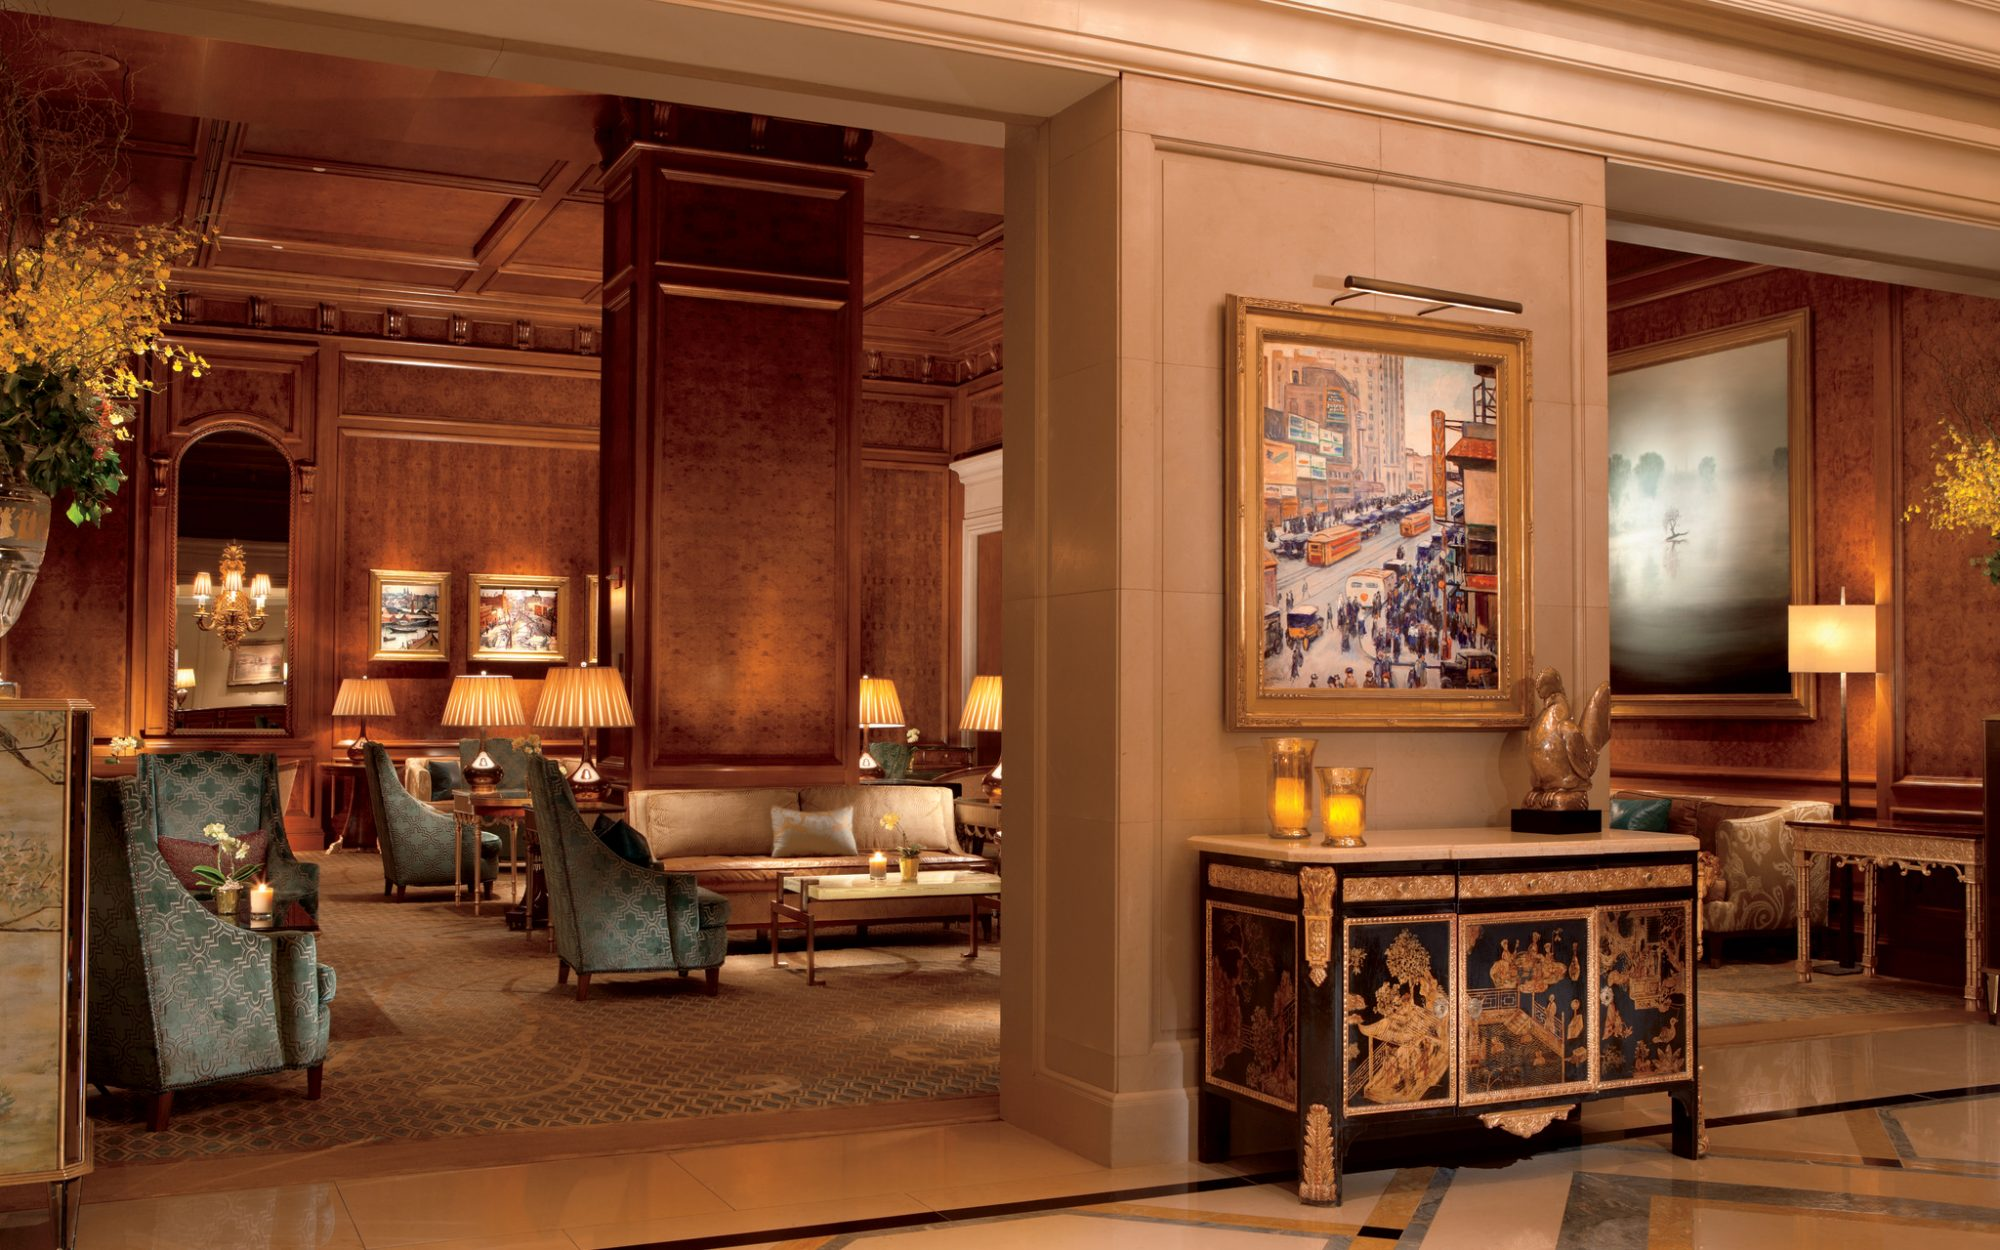 World's Top 50 Hotels: Ritz-Carlton New York, Central Park, New York